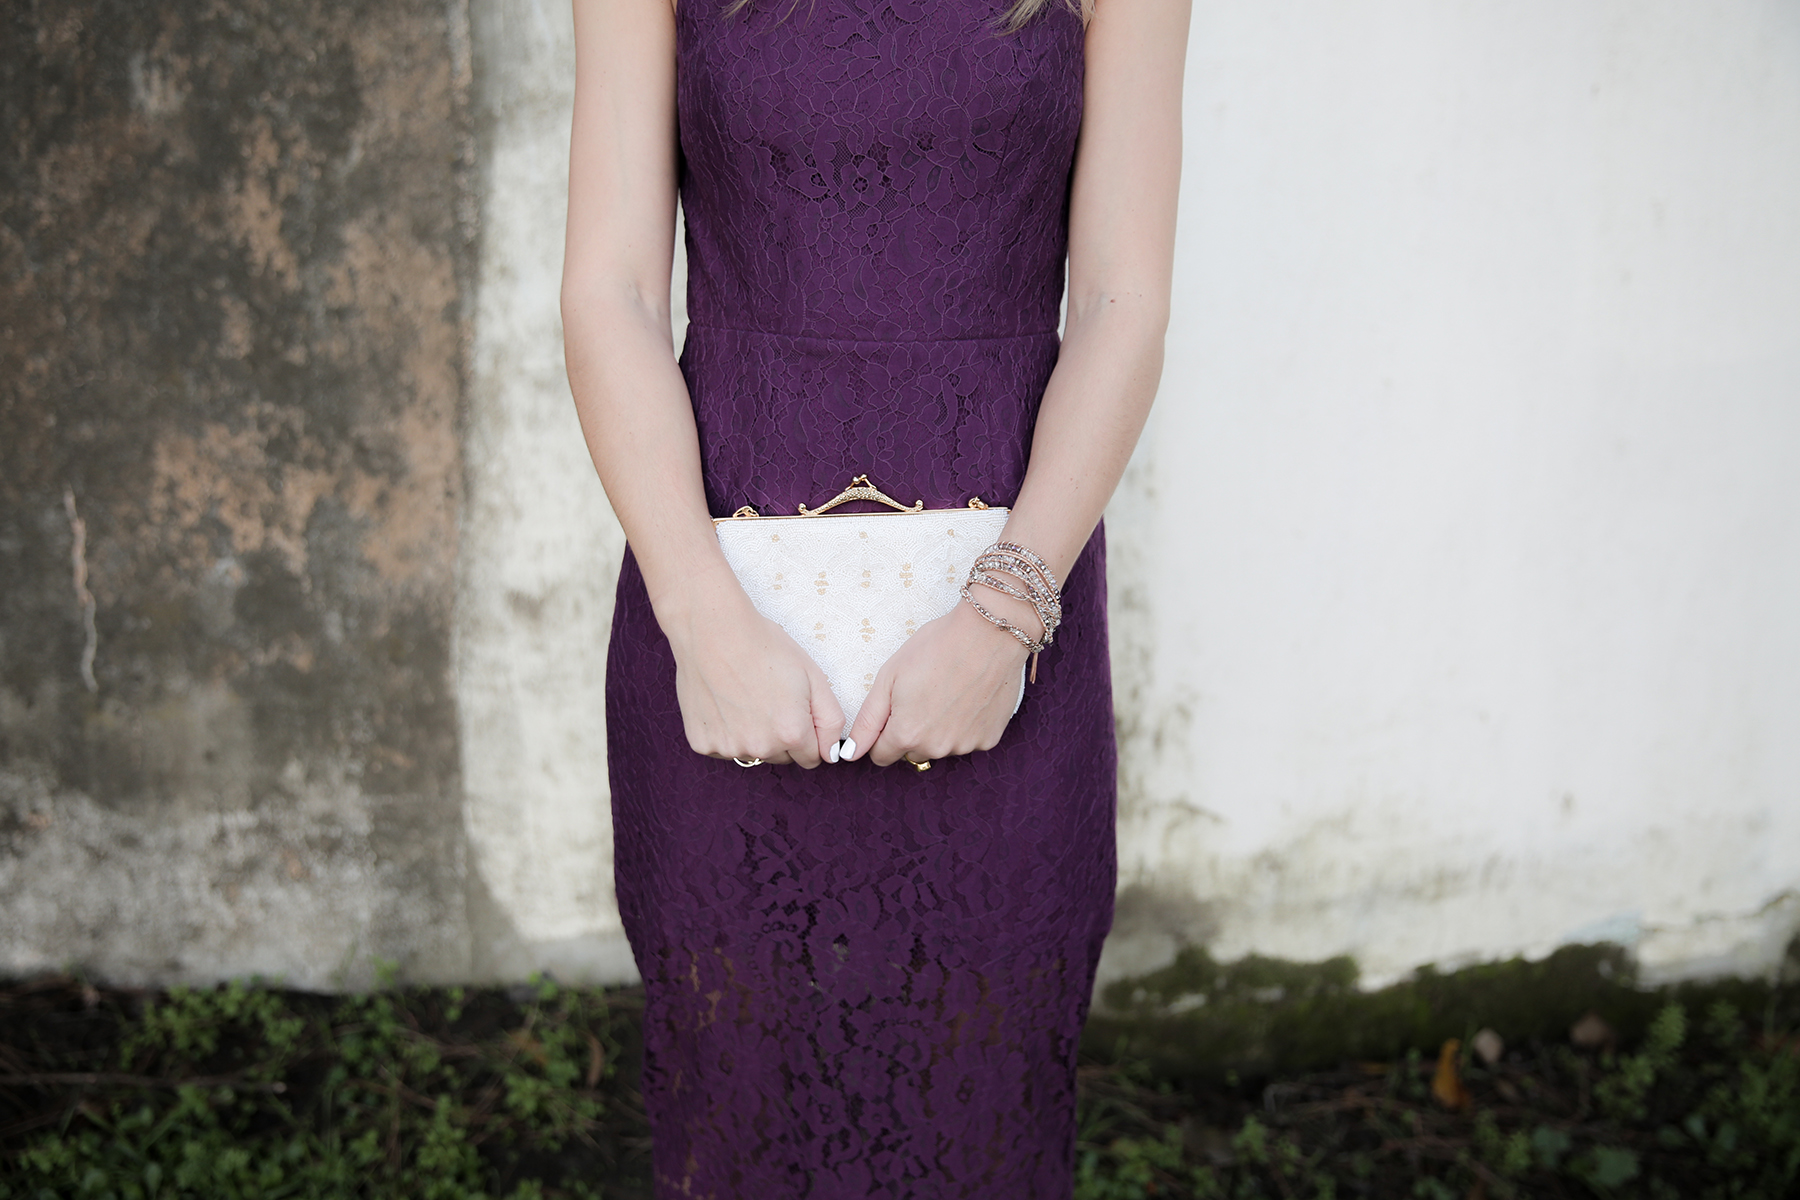 lace dress, winter wedding dress, winter wedding guest attire, bloomingdales dress, holiday dress, lace cocktail dress, vintage purse, Photo by Andrea Posadas of Amanda Holstein for Advicefroma20Something.com